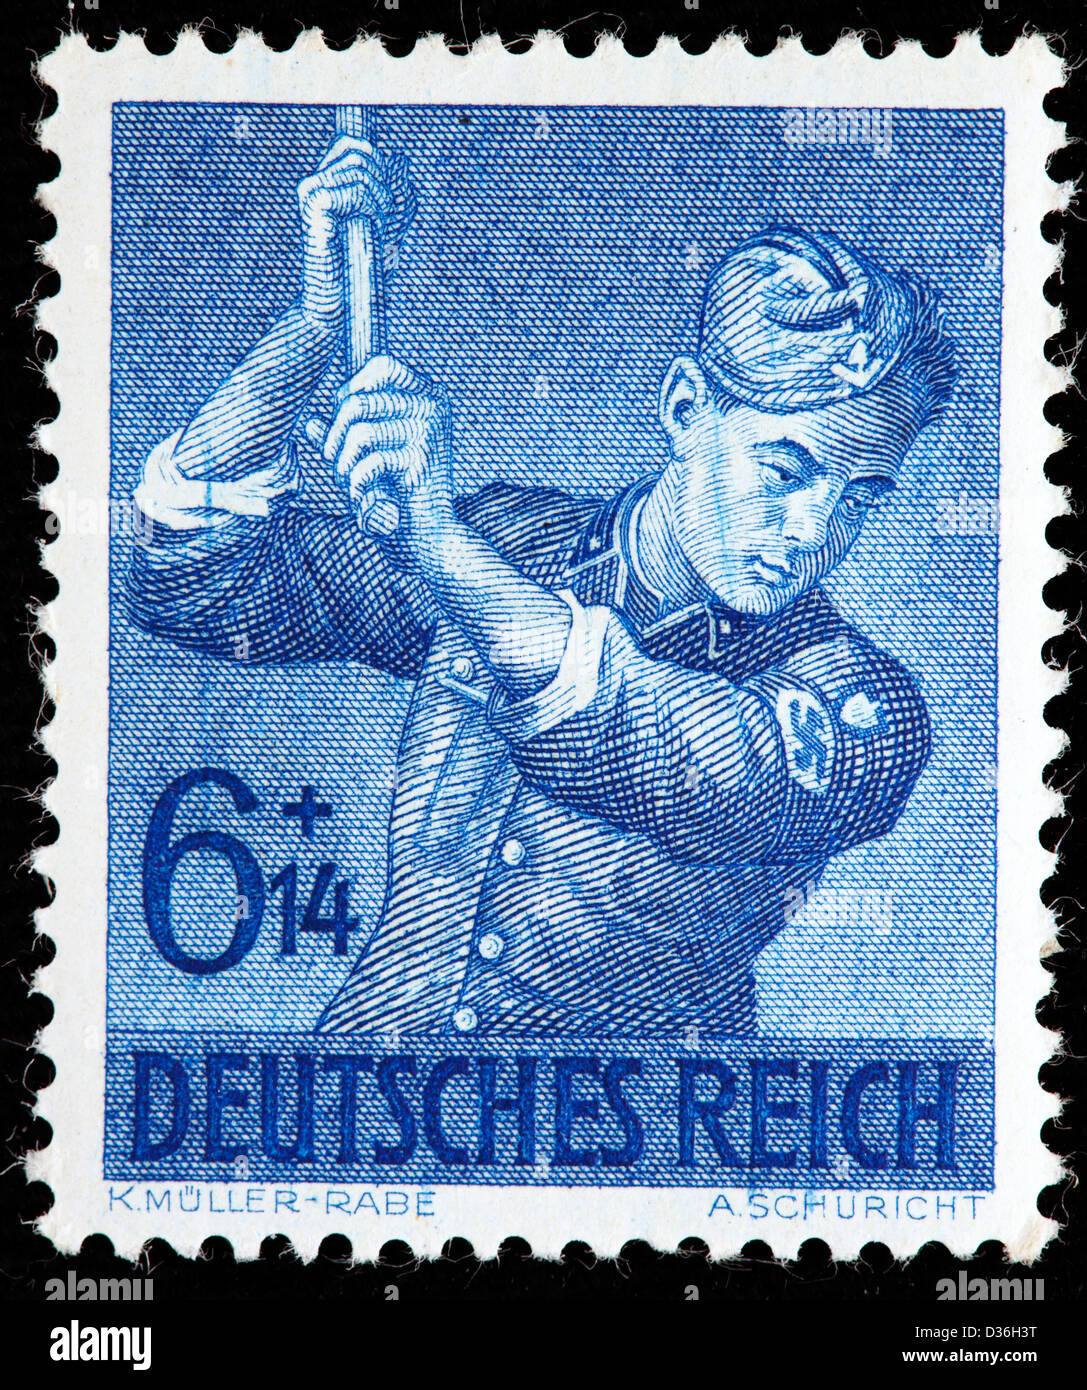 Corpsman chopping, Reich Labor Service Corpsmen, postage stamp, Germany, 1943 - Stock Image